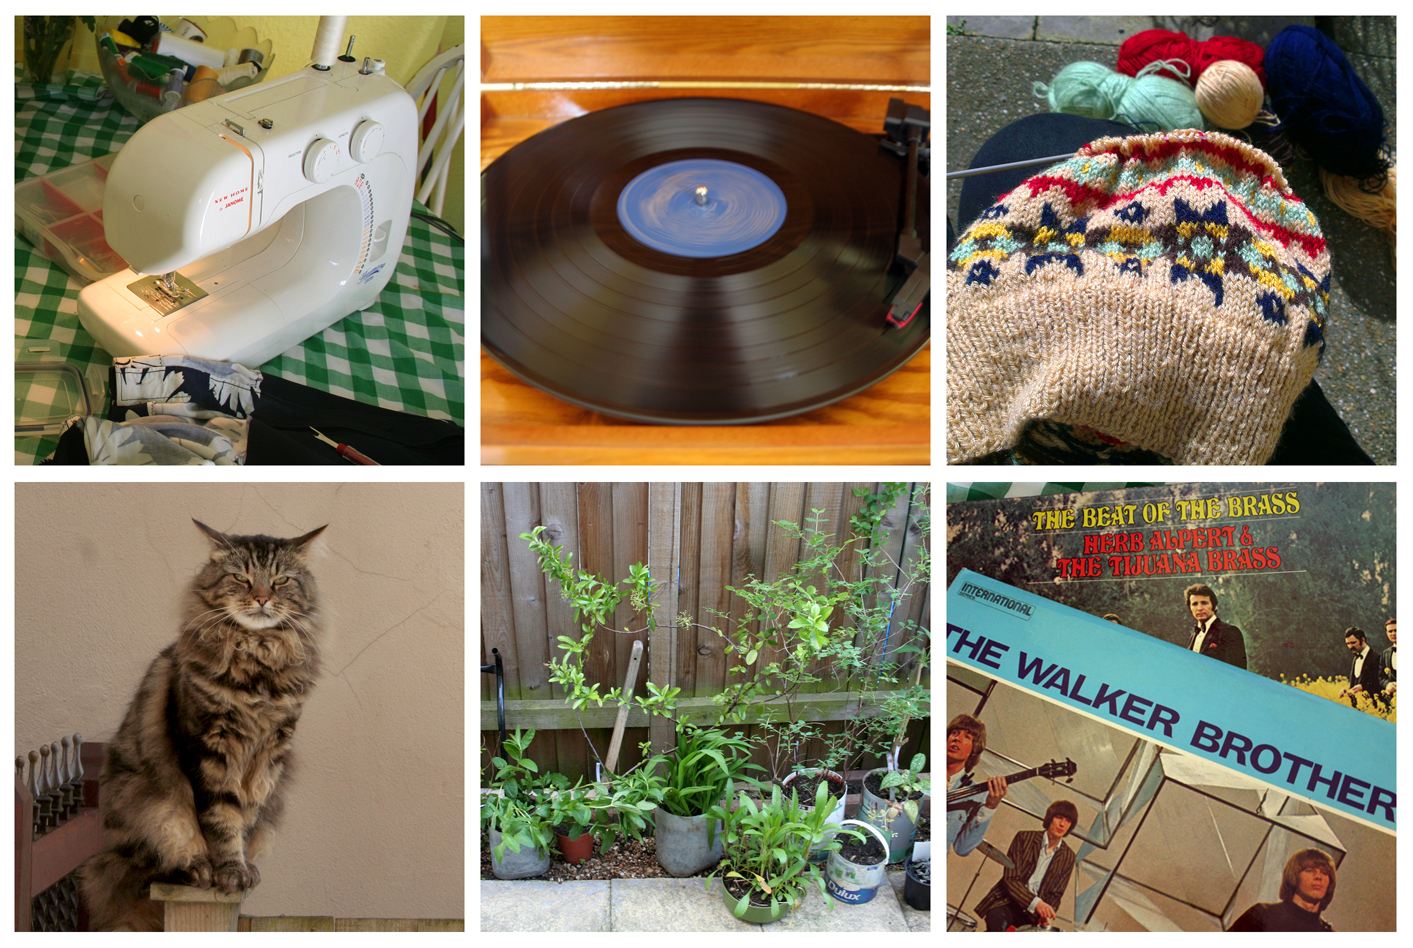 Collage of Images Sewing listening to the walker brothers record knitting and gardening